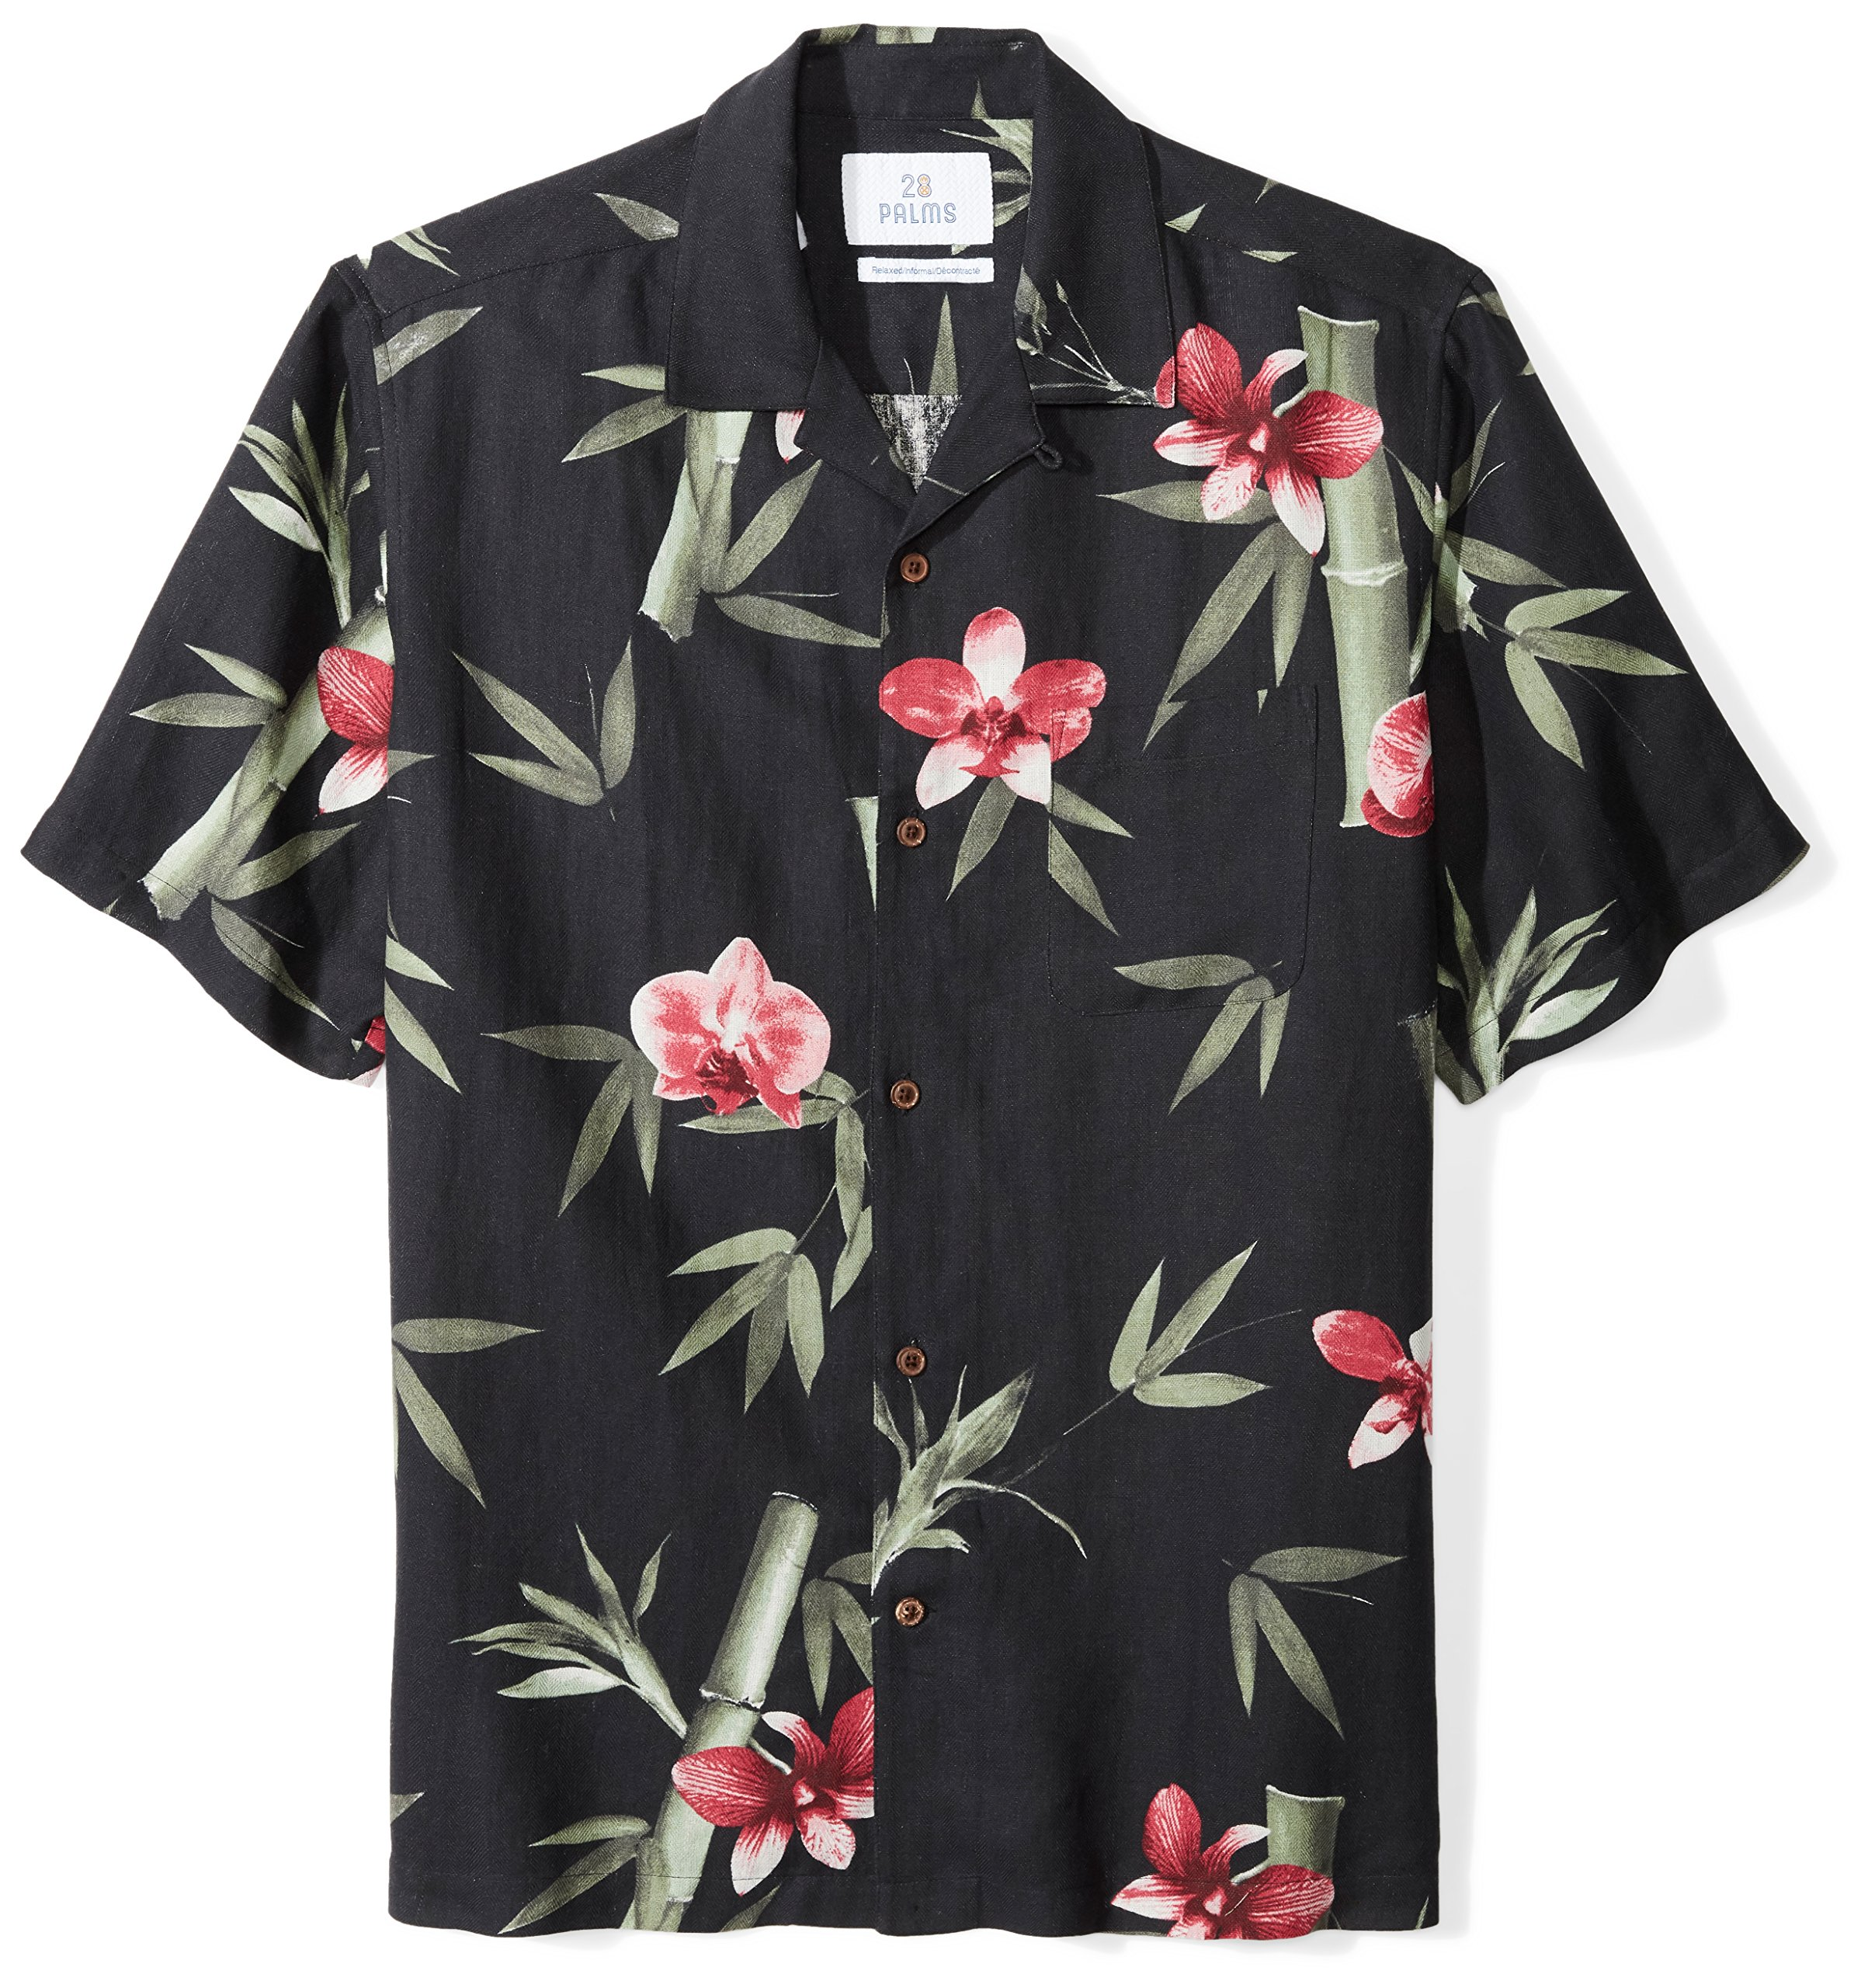 Brand 28 Palms Mens Relaxed-Fit Silk//Linen Tropical Leaves Jacquard Shirt